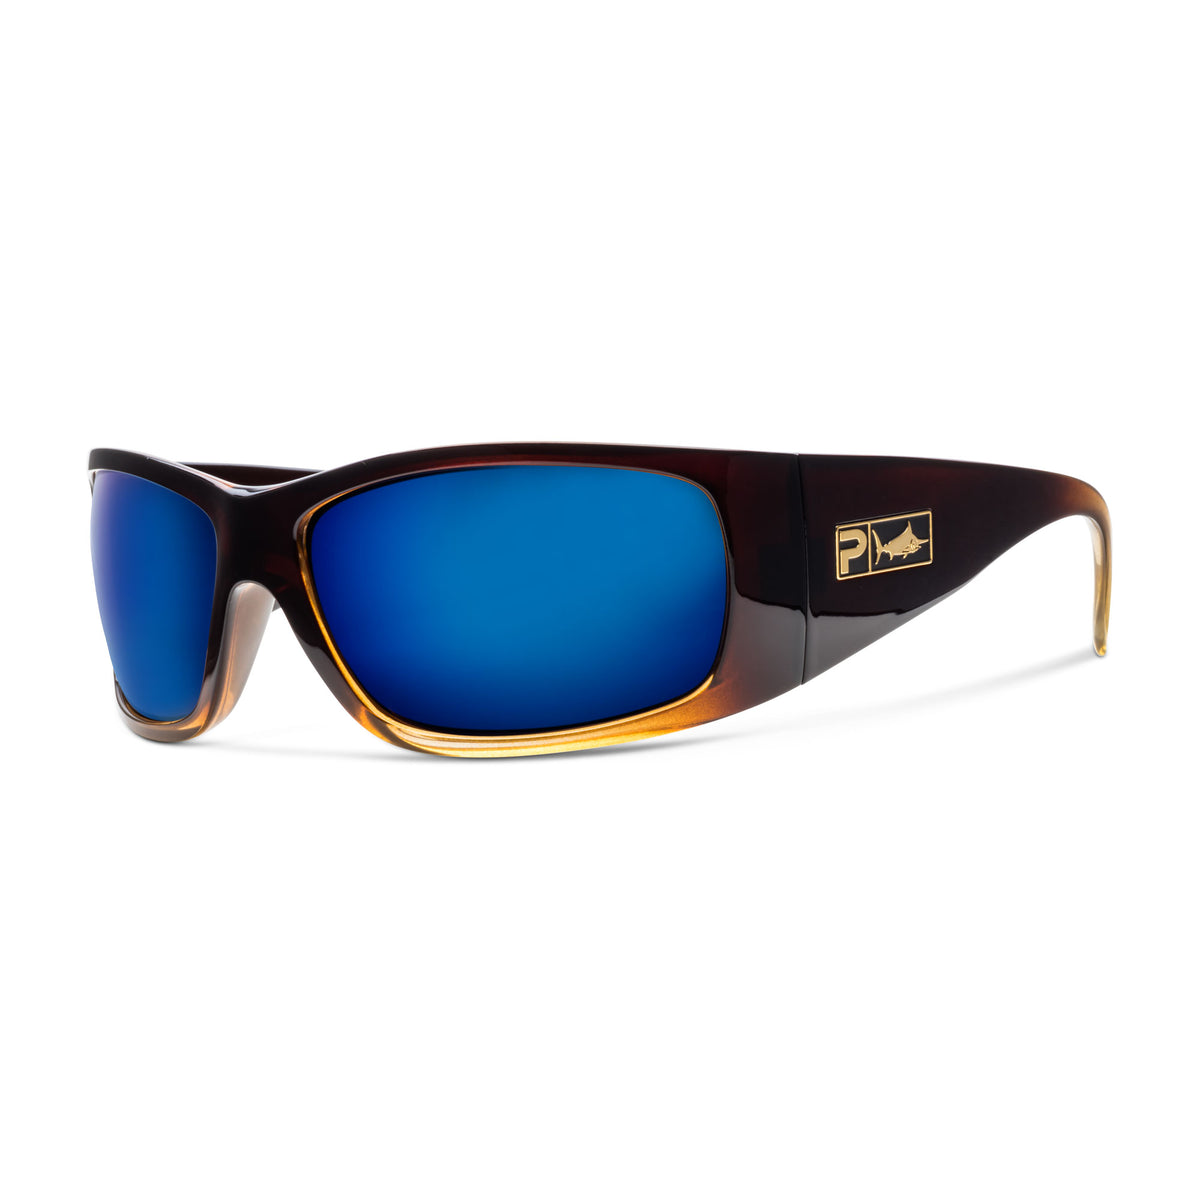 Twin Diesel - Polarized Polycarbonate Lens Big Image - 4